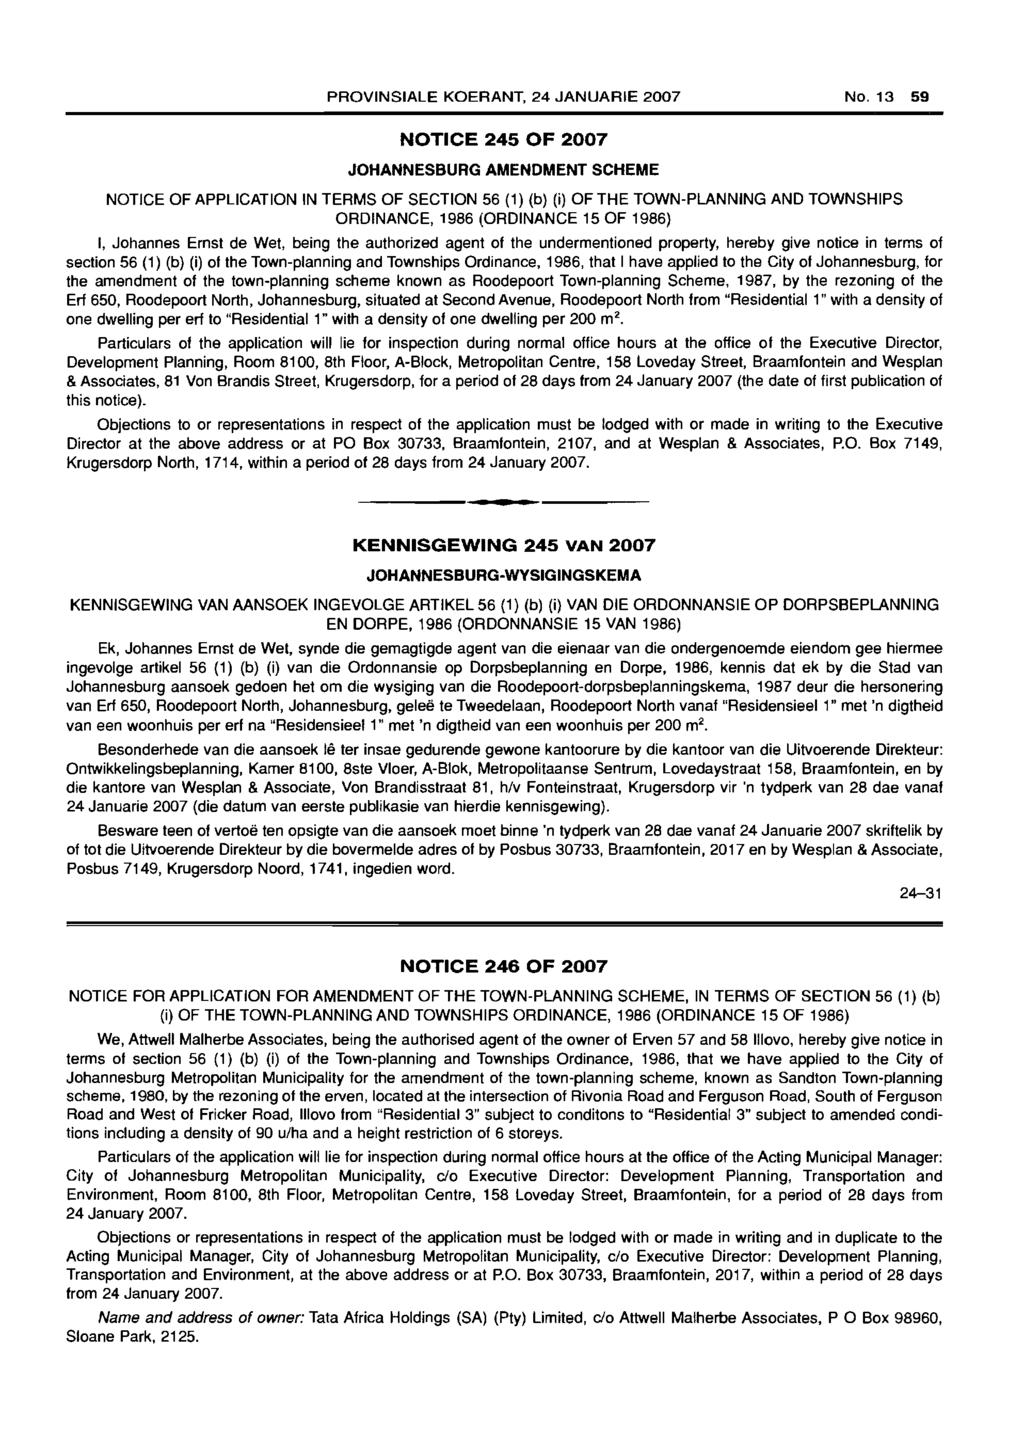 PROVINSIALE KOERANT, 24 JANUARIE 2007 No, 13 59 NOTICE 245 OF 2007 JOHANNESBURG AMENDMENT SCHEME NOTICE OF APPLICATION IN TERMS OF SECTION 56 (1) (b) (i) OF THE TOWN-PLANNING AND TOWNSHIPS ORDINANCE,